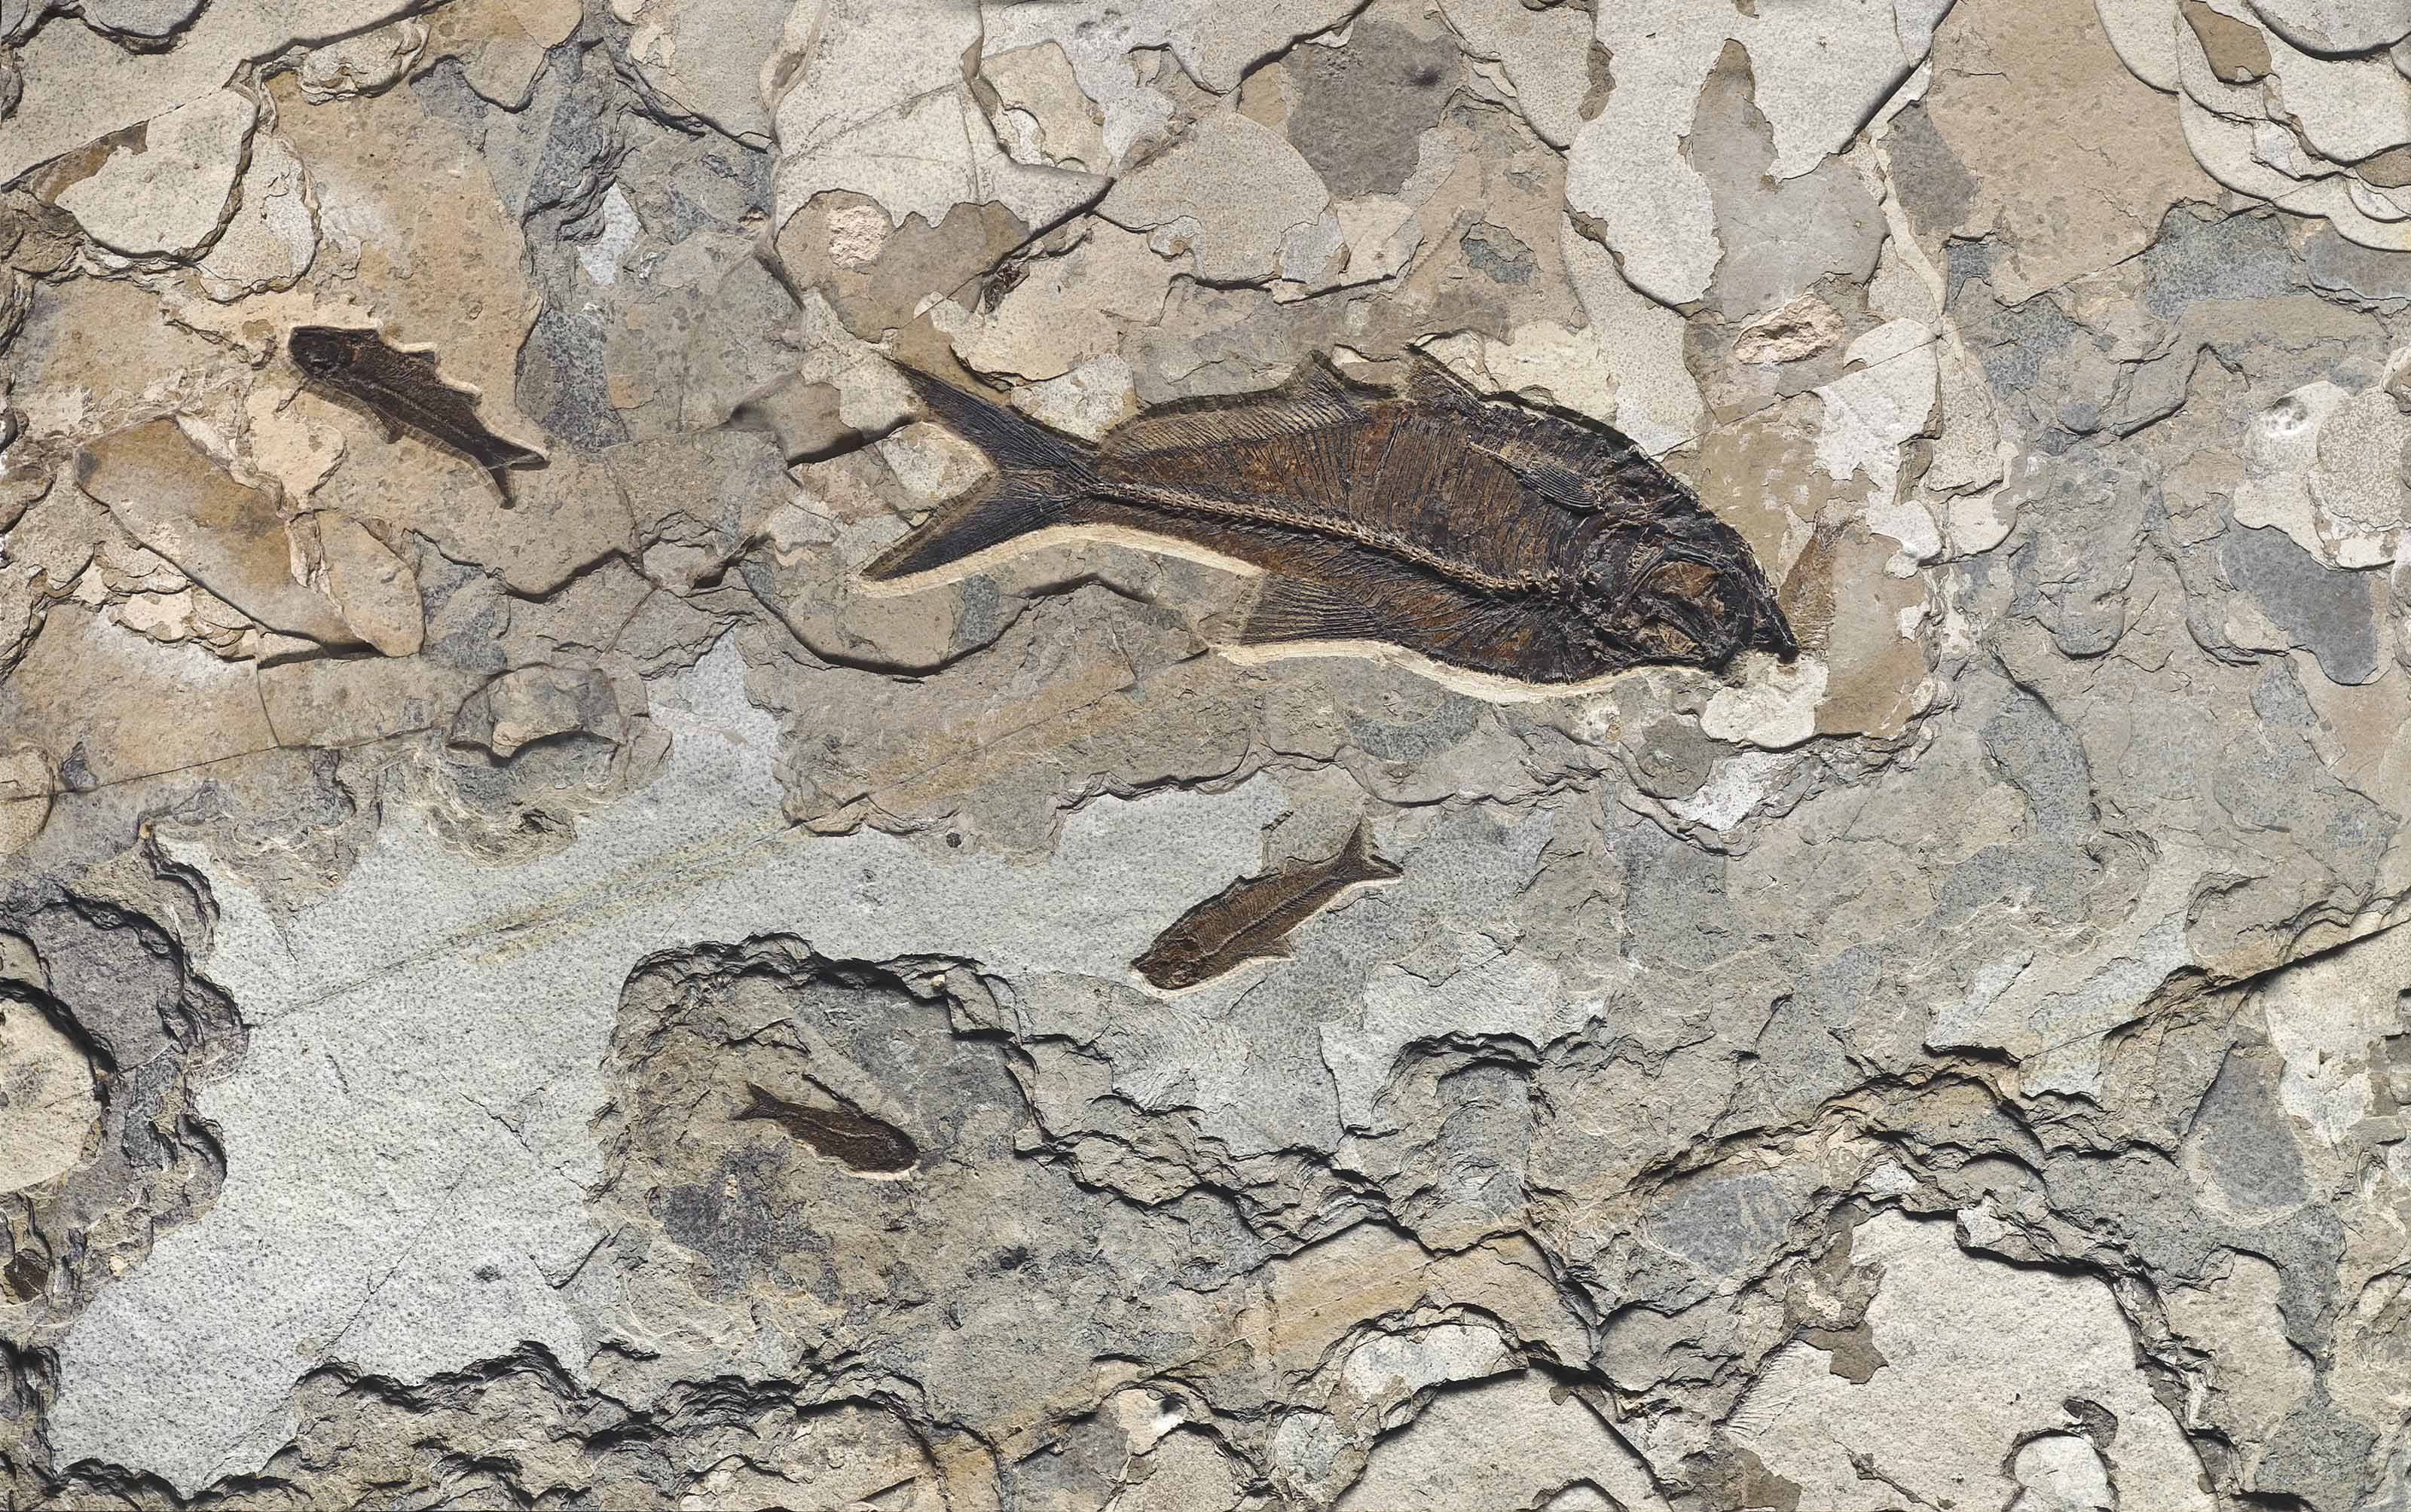 A PLAQUE OF FOSSIL FISH